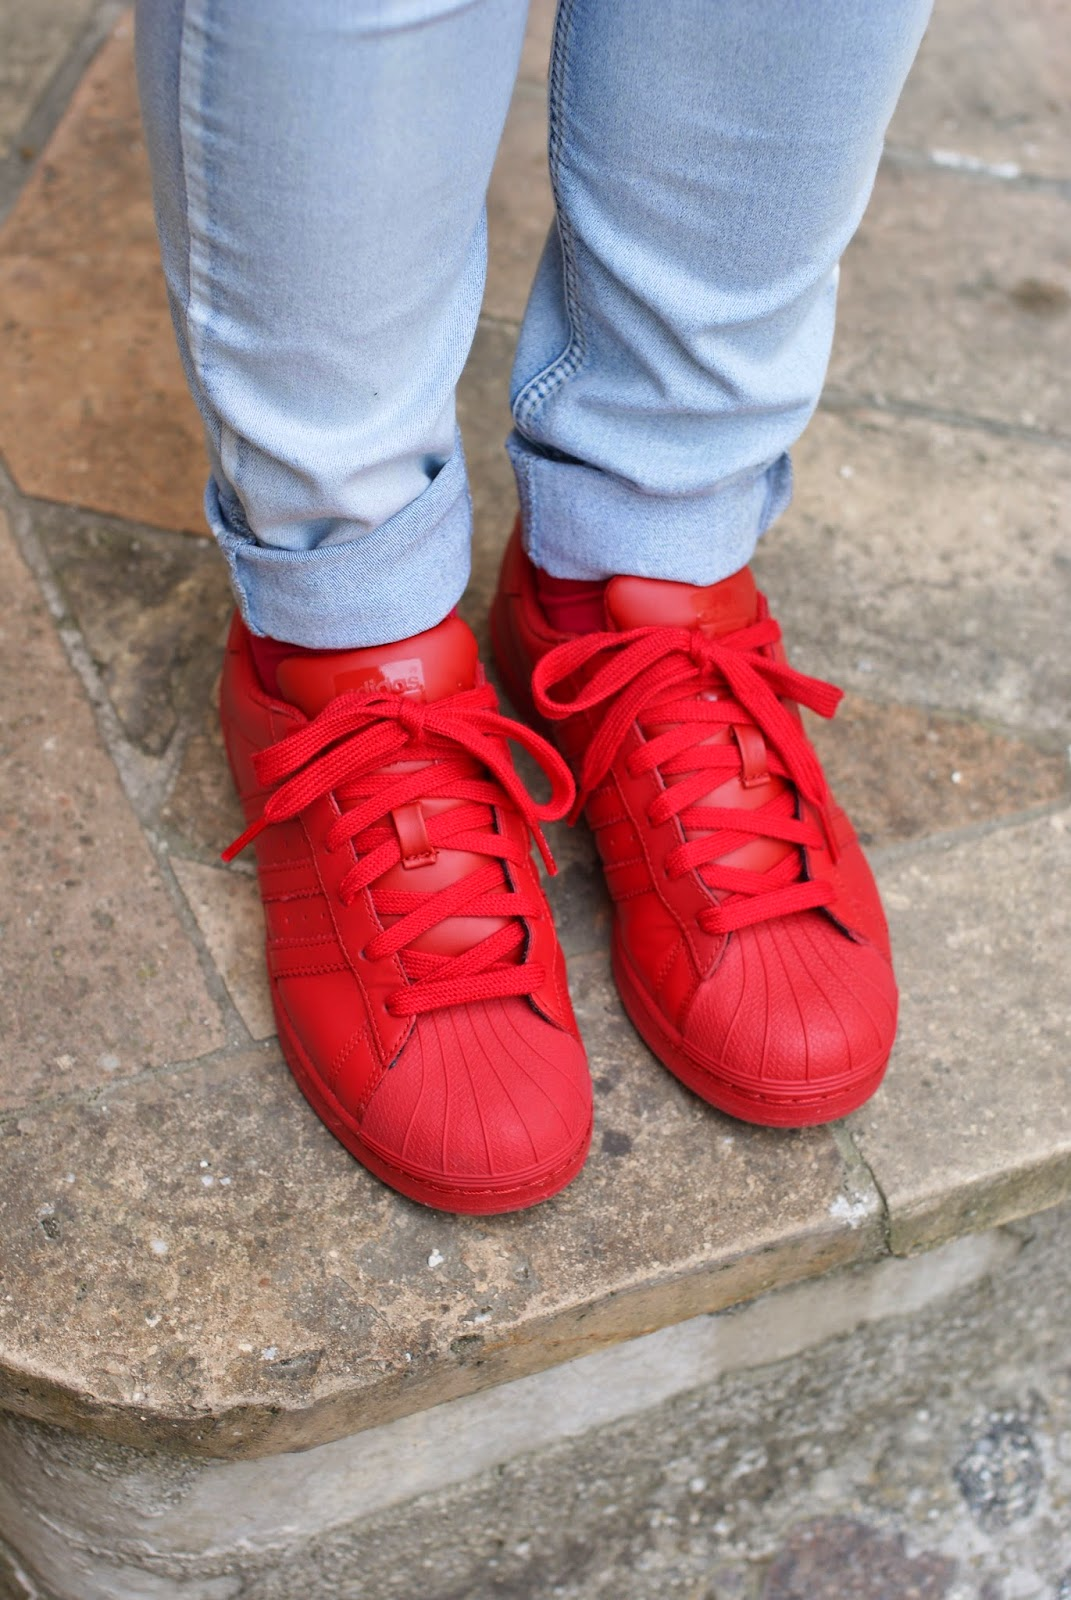 supercolor adidas rosse da donna, red adidas supercolor sneakers, Fashion and Cookies fashion blog, fashion blogger streetstyle